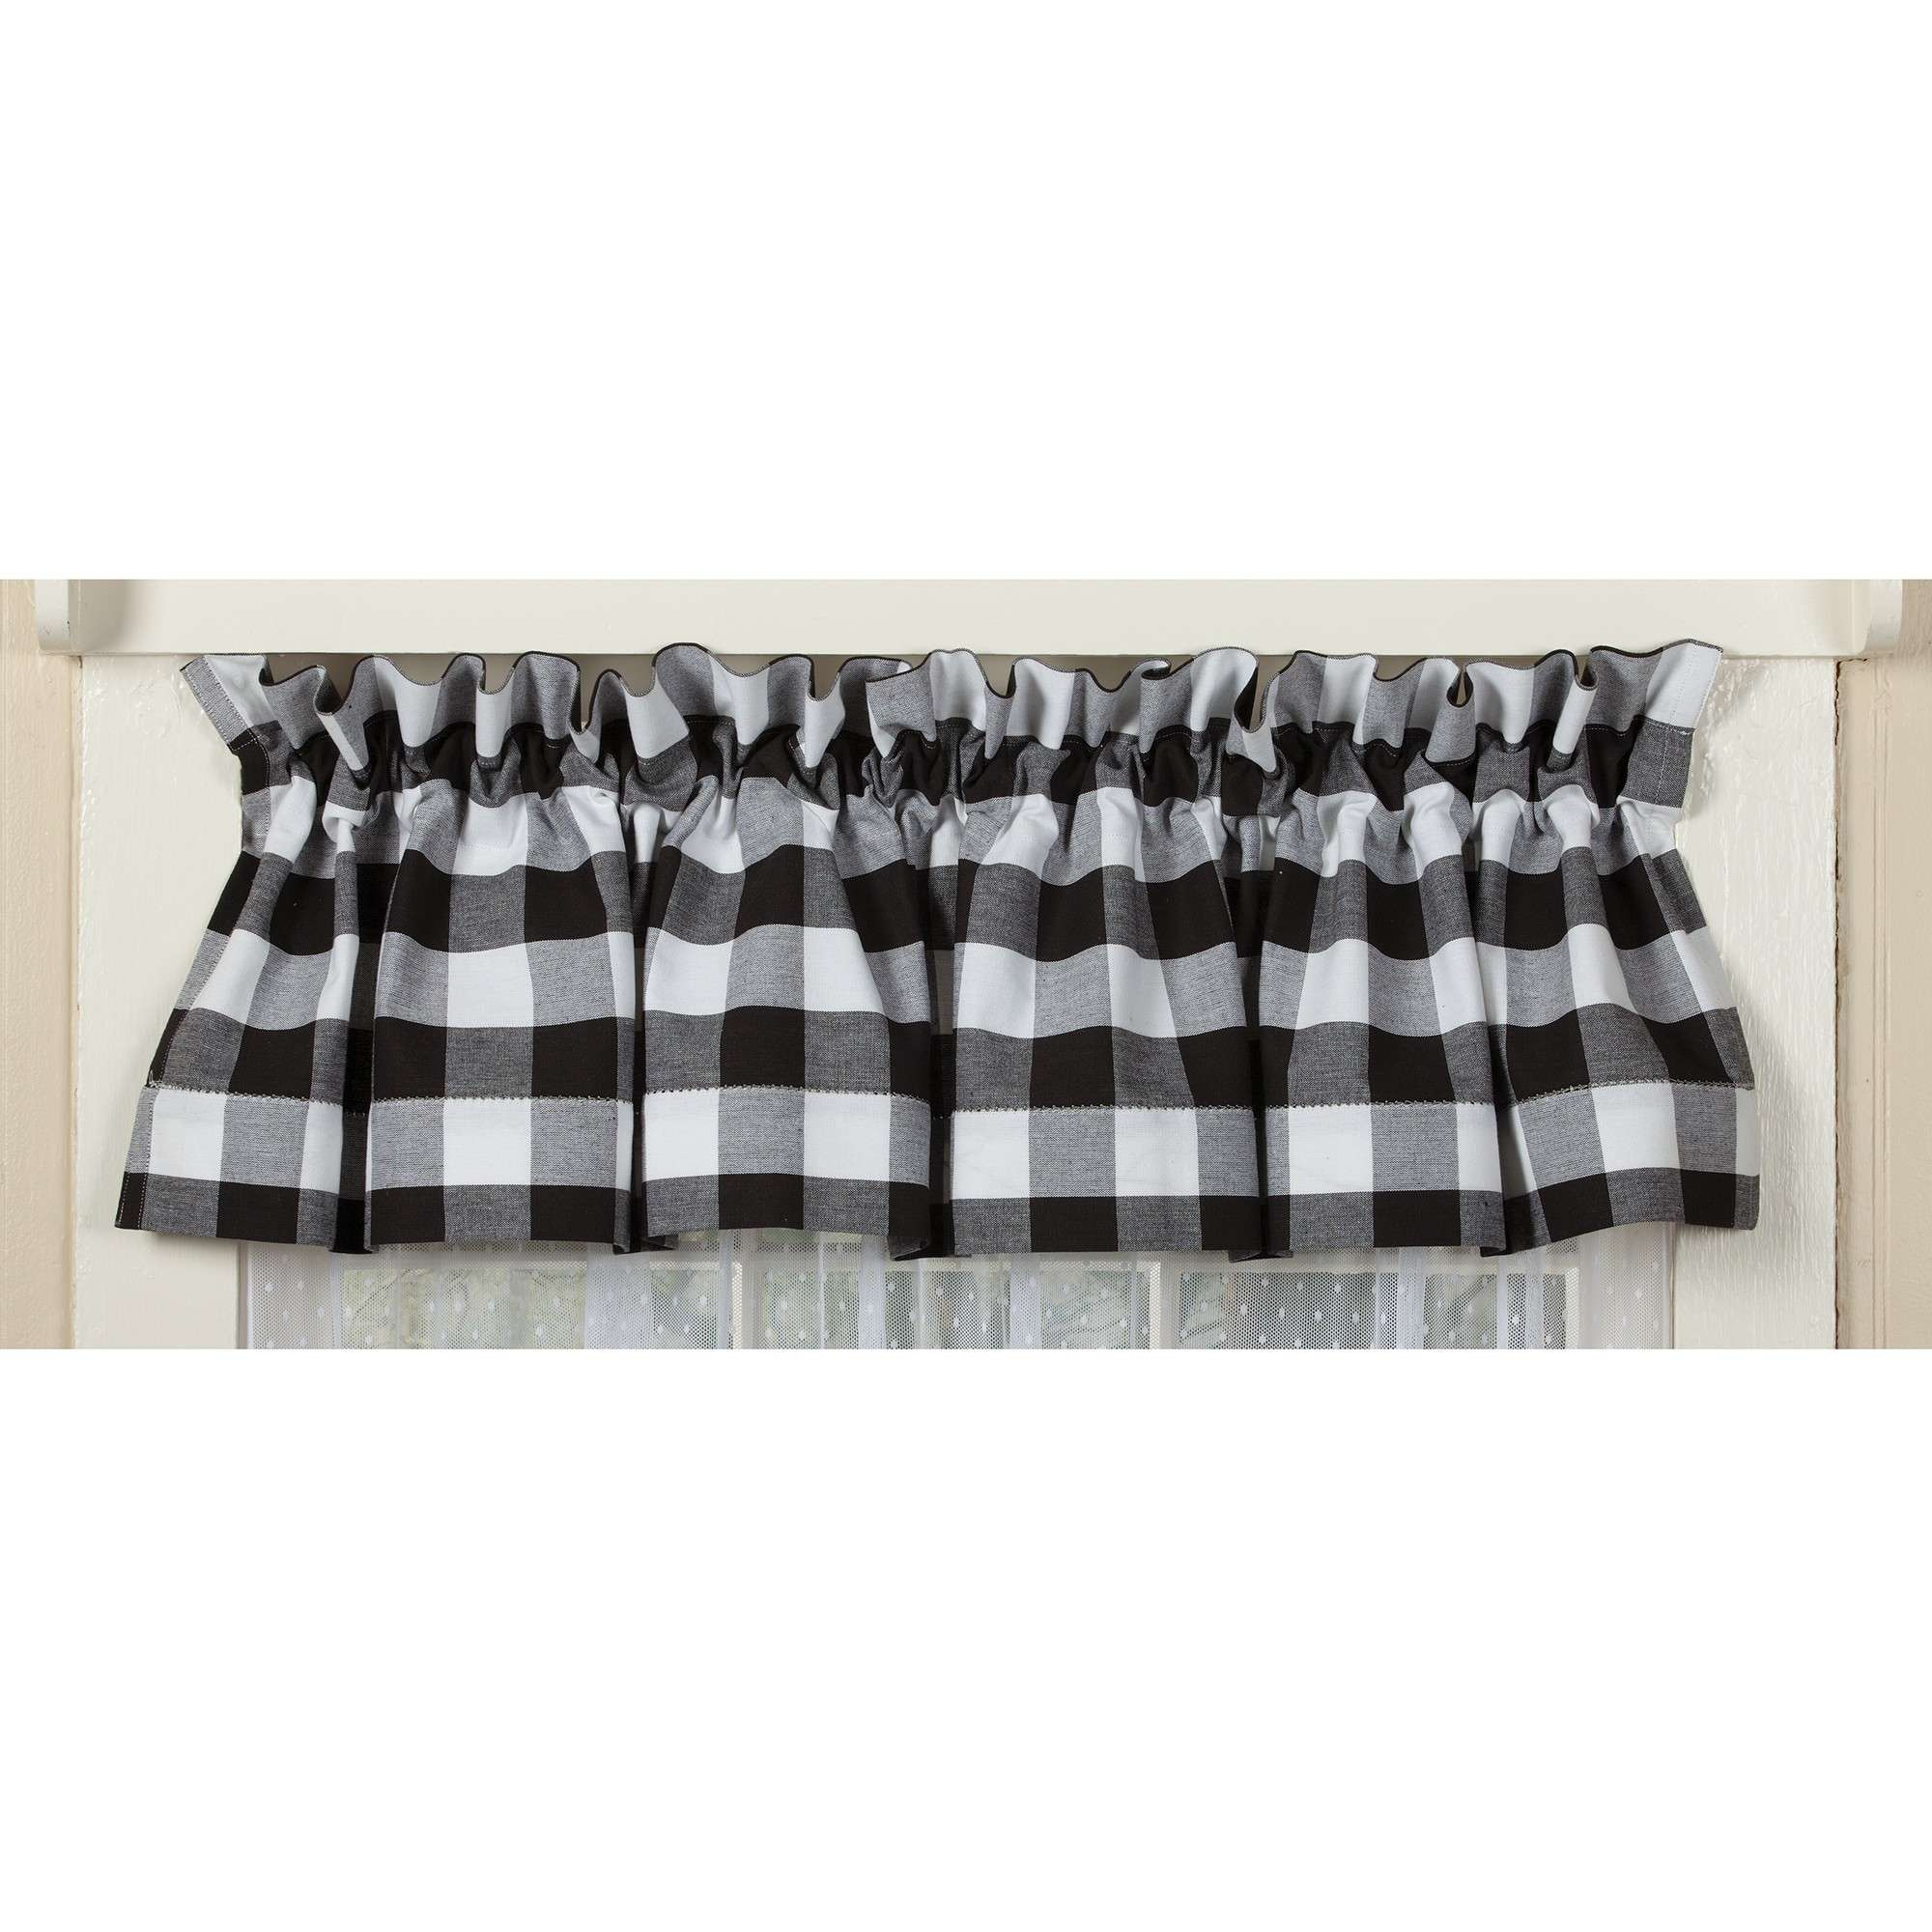 Alluring Black And White Checkered Kitchen Valance Valances With Cotton Blend Classic Checkered Decorative Window Curtains (View 4 of 20)